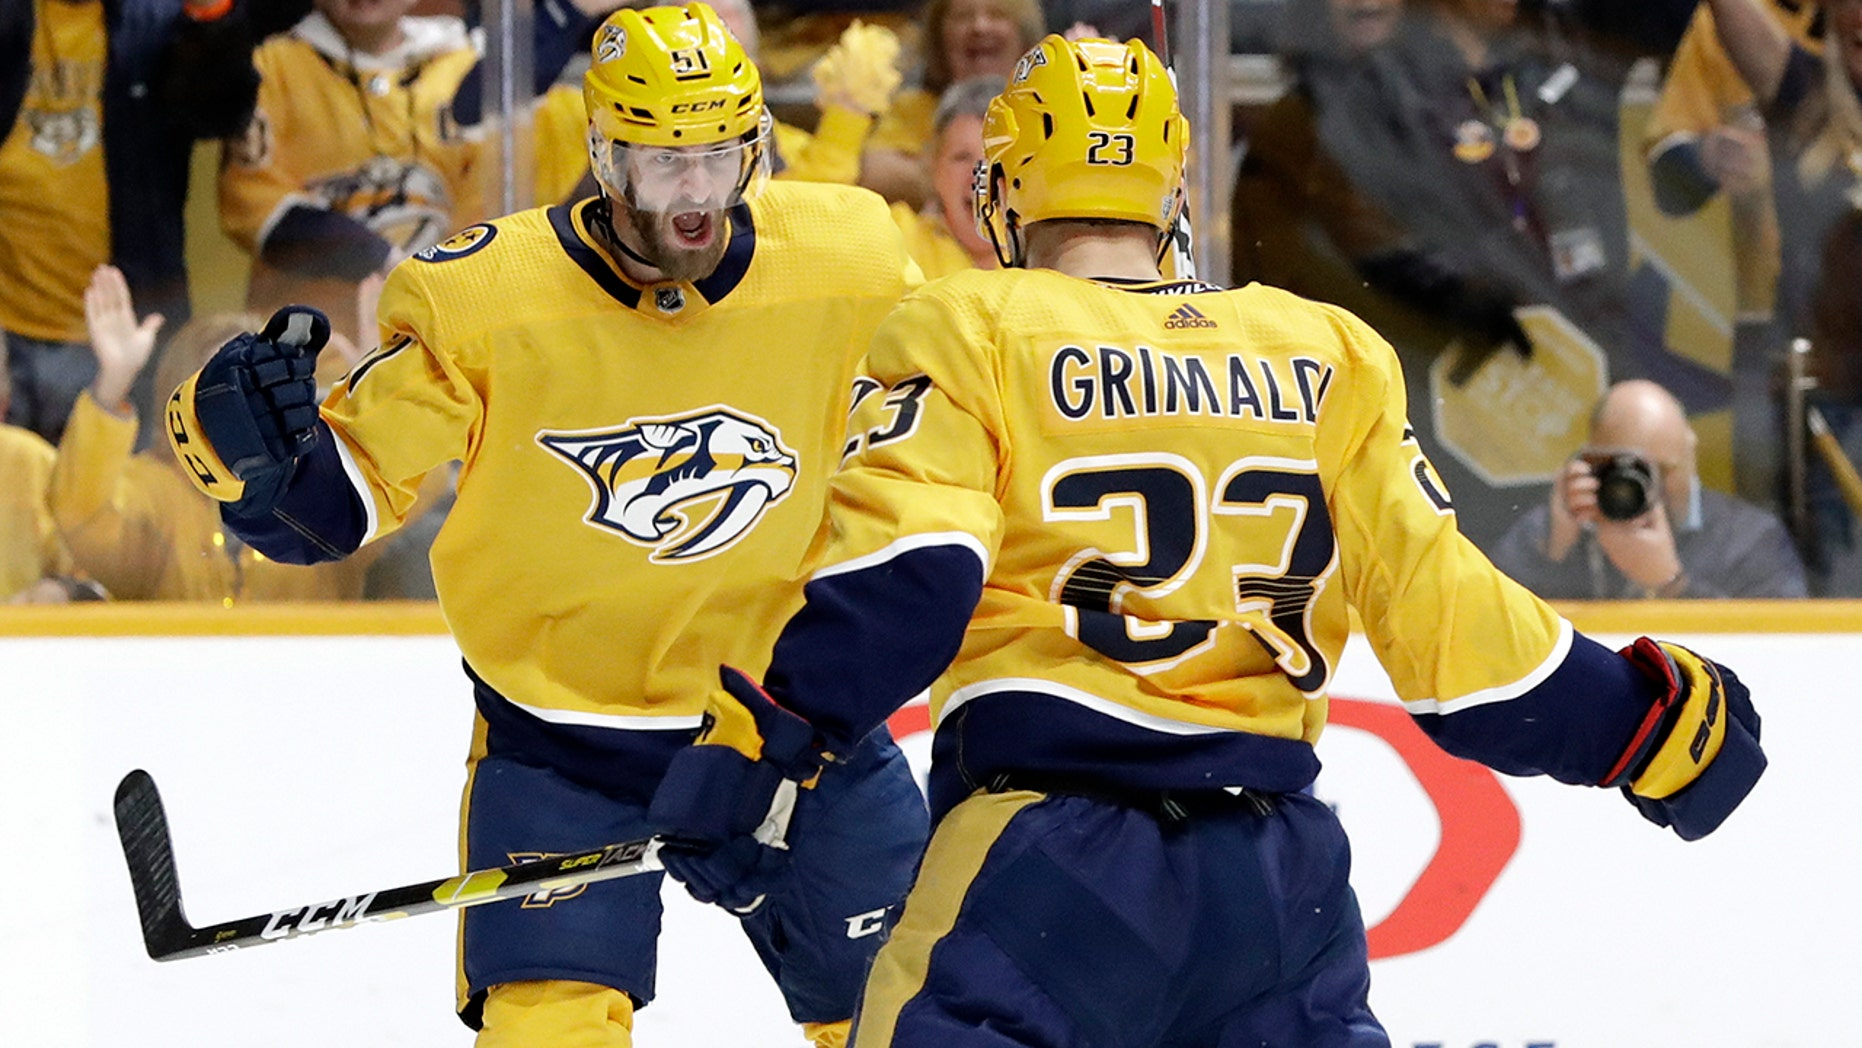 Nashville Predators center Rocco Grimaldi (23) celebrates with Austin Watson (51) after scoring a goal against the Dallas Stars during the second period in Game 2 of an NHL hockey first-round playoff series Saturday, April 13, 2019, in Nashville, Tenn. (AP Photo/Mark Humphrey)